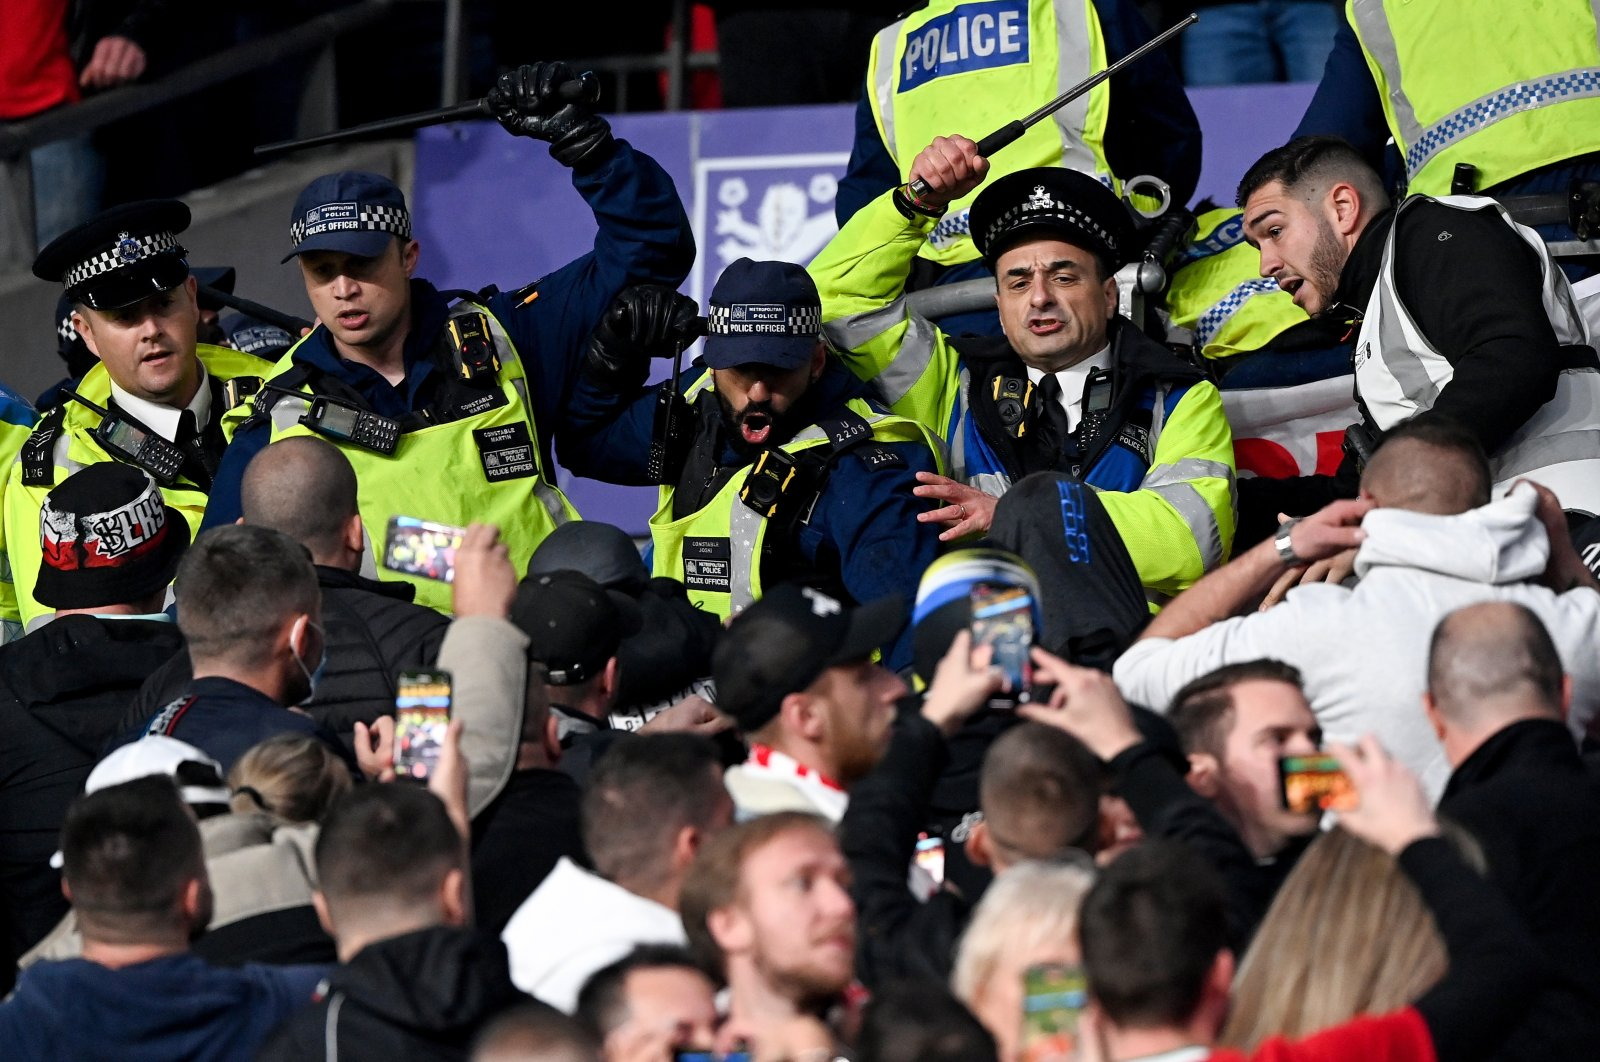 Police officers in the stands use batons against Hungarian fans during the FIFA World Cup Qatar 2022 qualifying Group I soccer match between England and Hungary at Wembley-Stadium in London, Britain, Oct. 12, 2021. (EPA Photo)